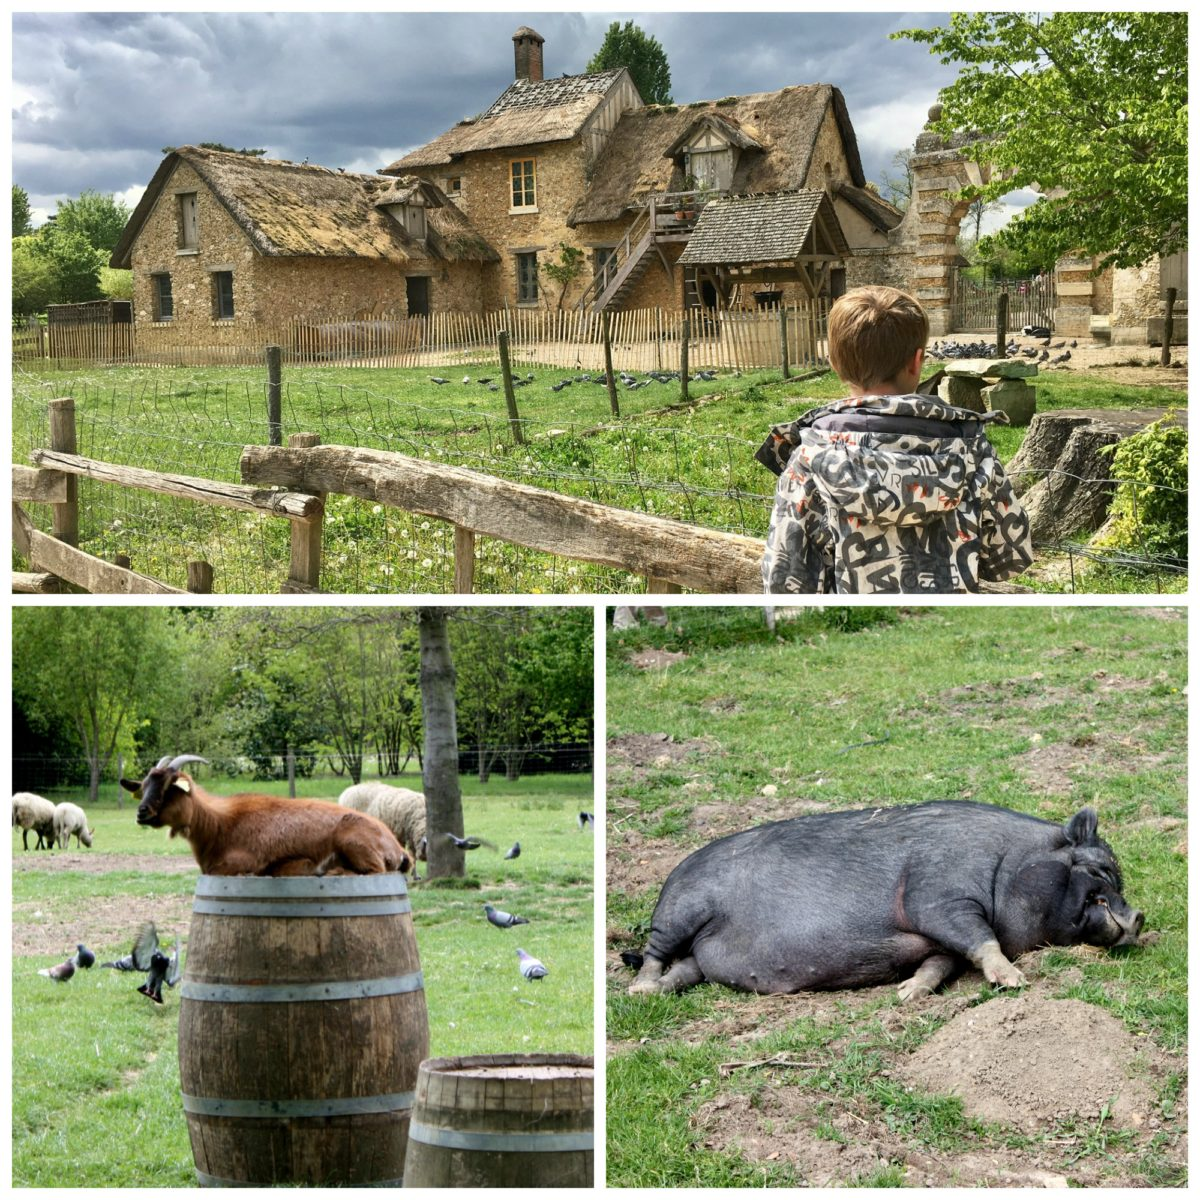 Marie-Antoinette's Hamlet - The Farm